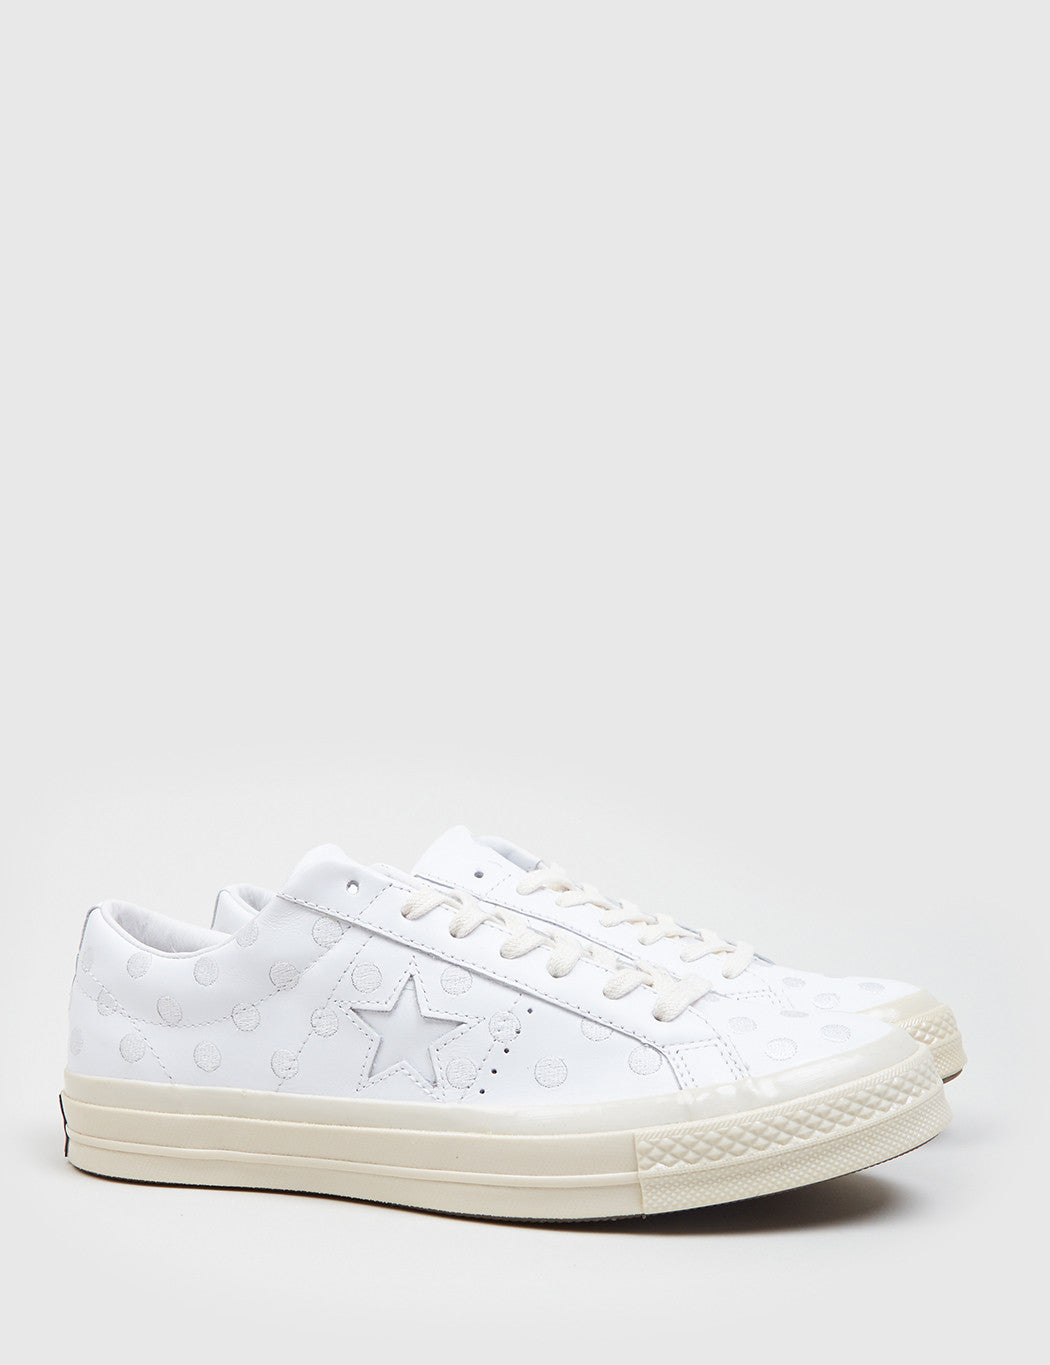 060f2fe847afb3 ... Converse Leather One Star  74 (Polkadot Leather) - White ...